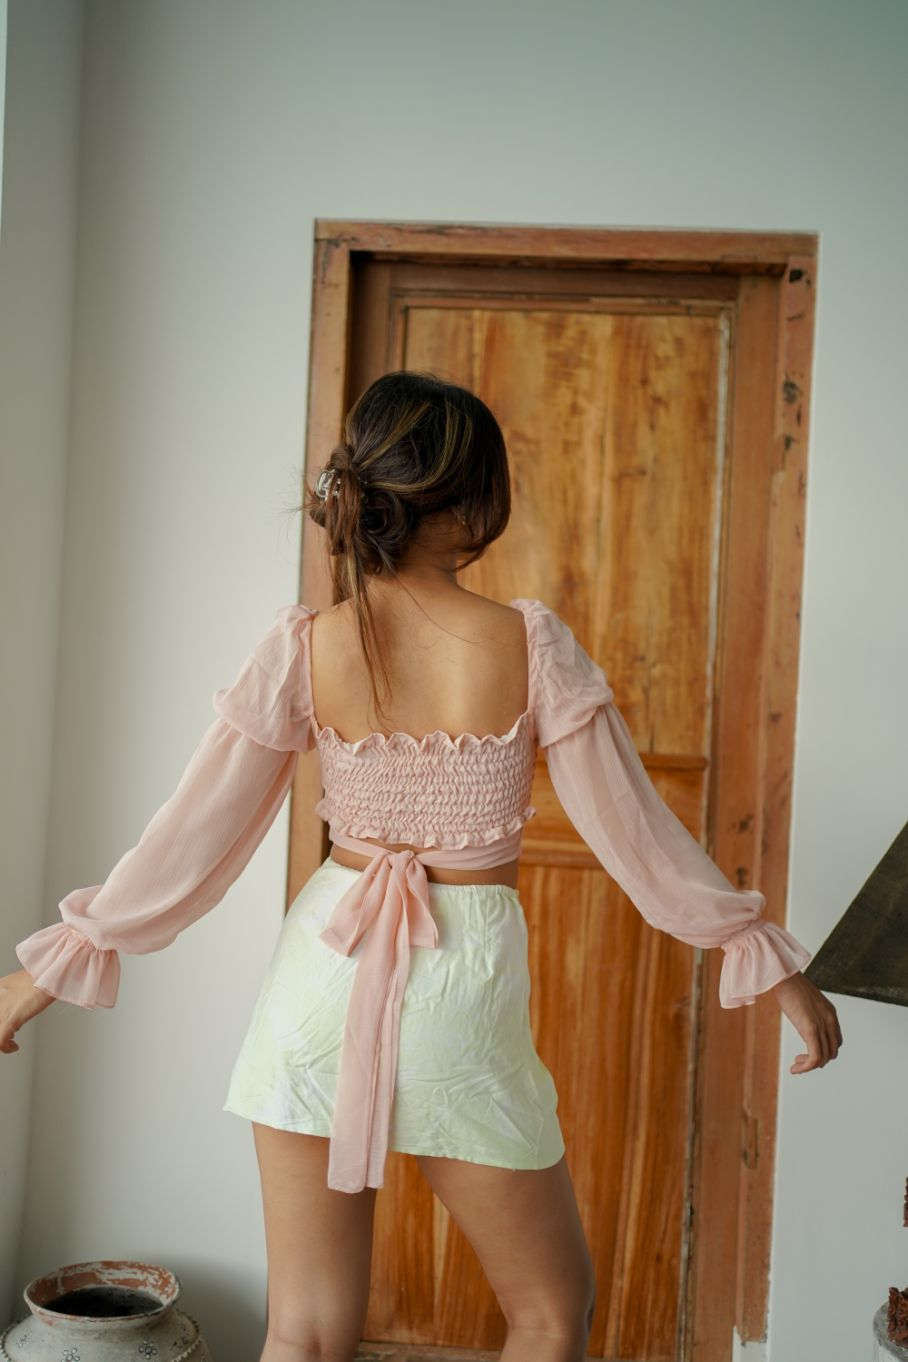 VITELLI TOP IN PINK - NOT BACKLESS